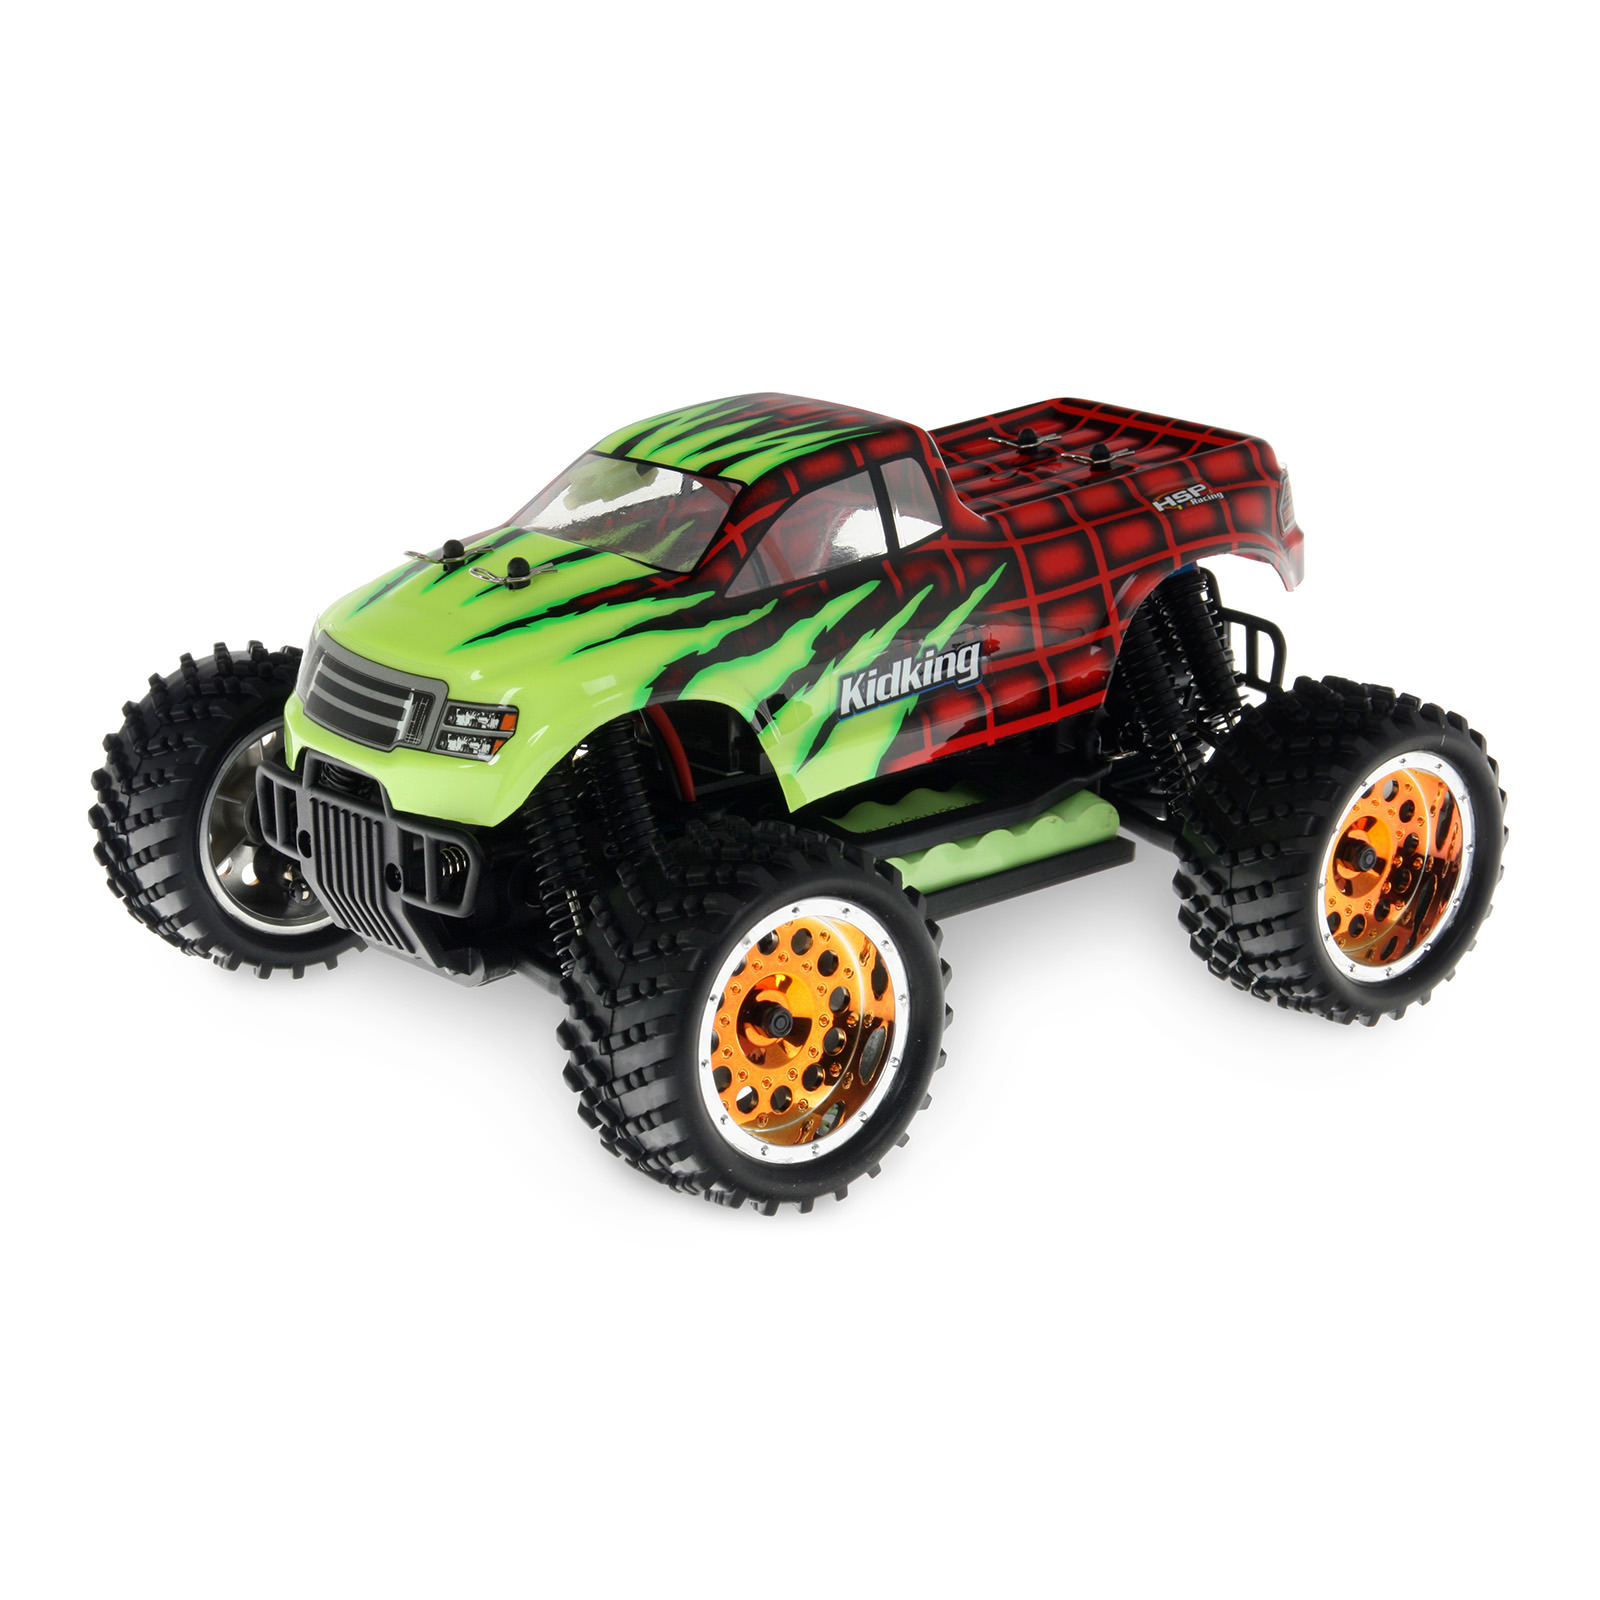 Hsp Rc Truck Nitro Gas Power Off Road Monster Truck 94188: HSP 94186-18608 Red RC Monster Truck At Hobby Warehouse